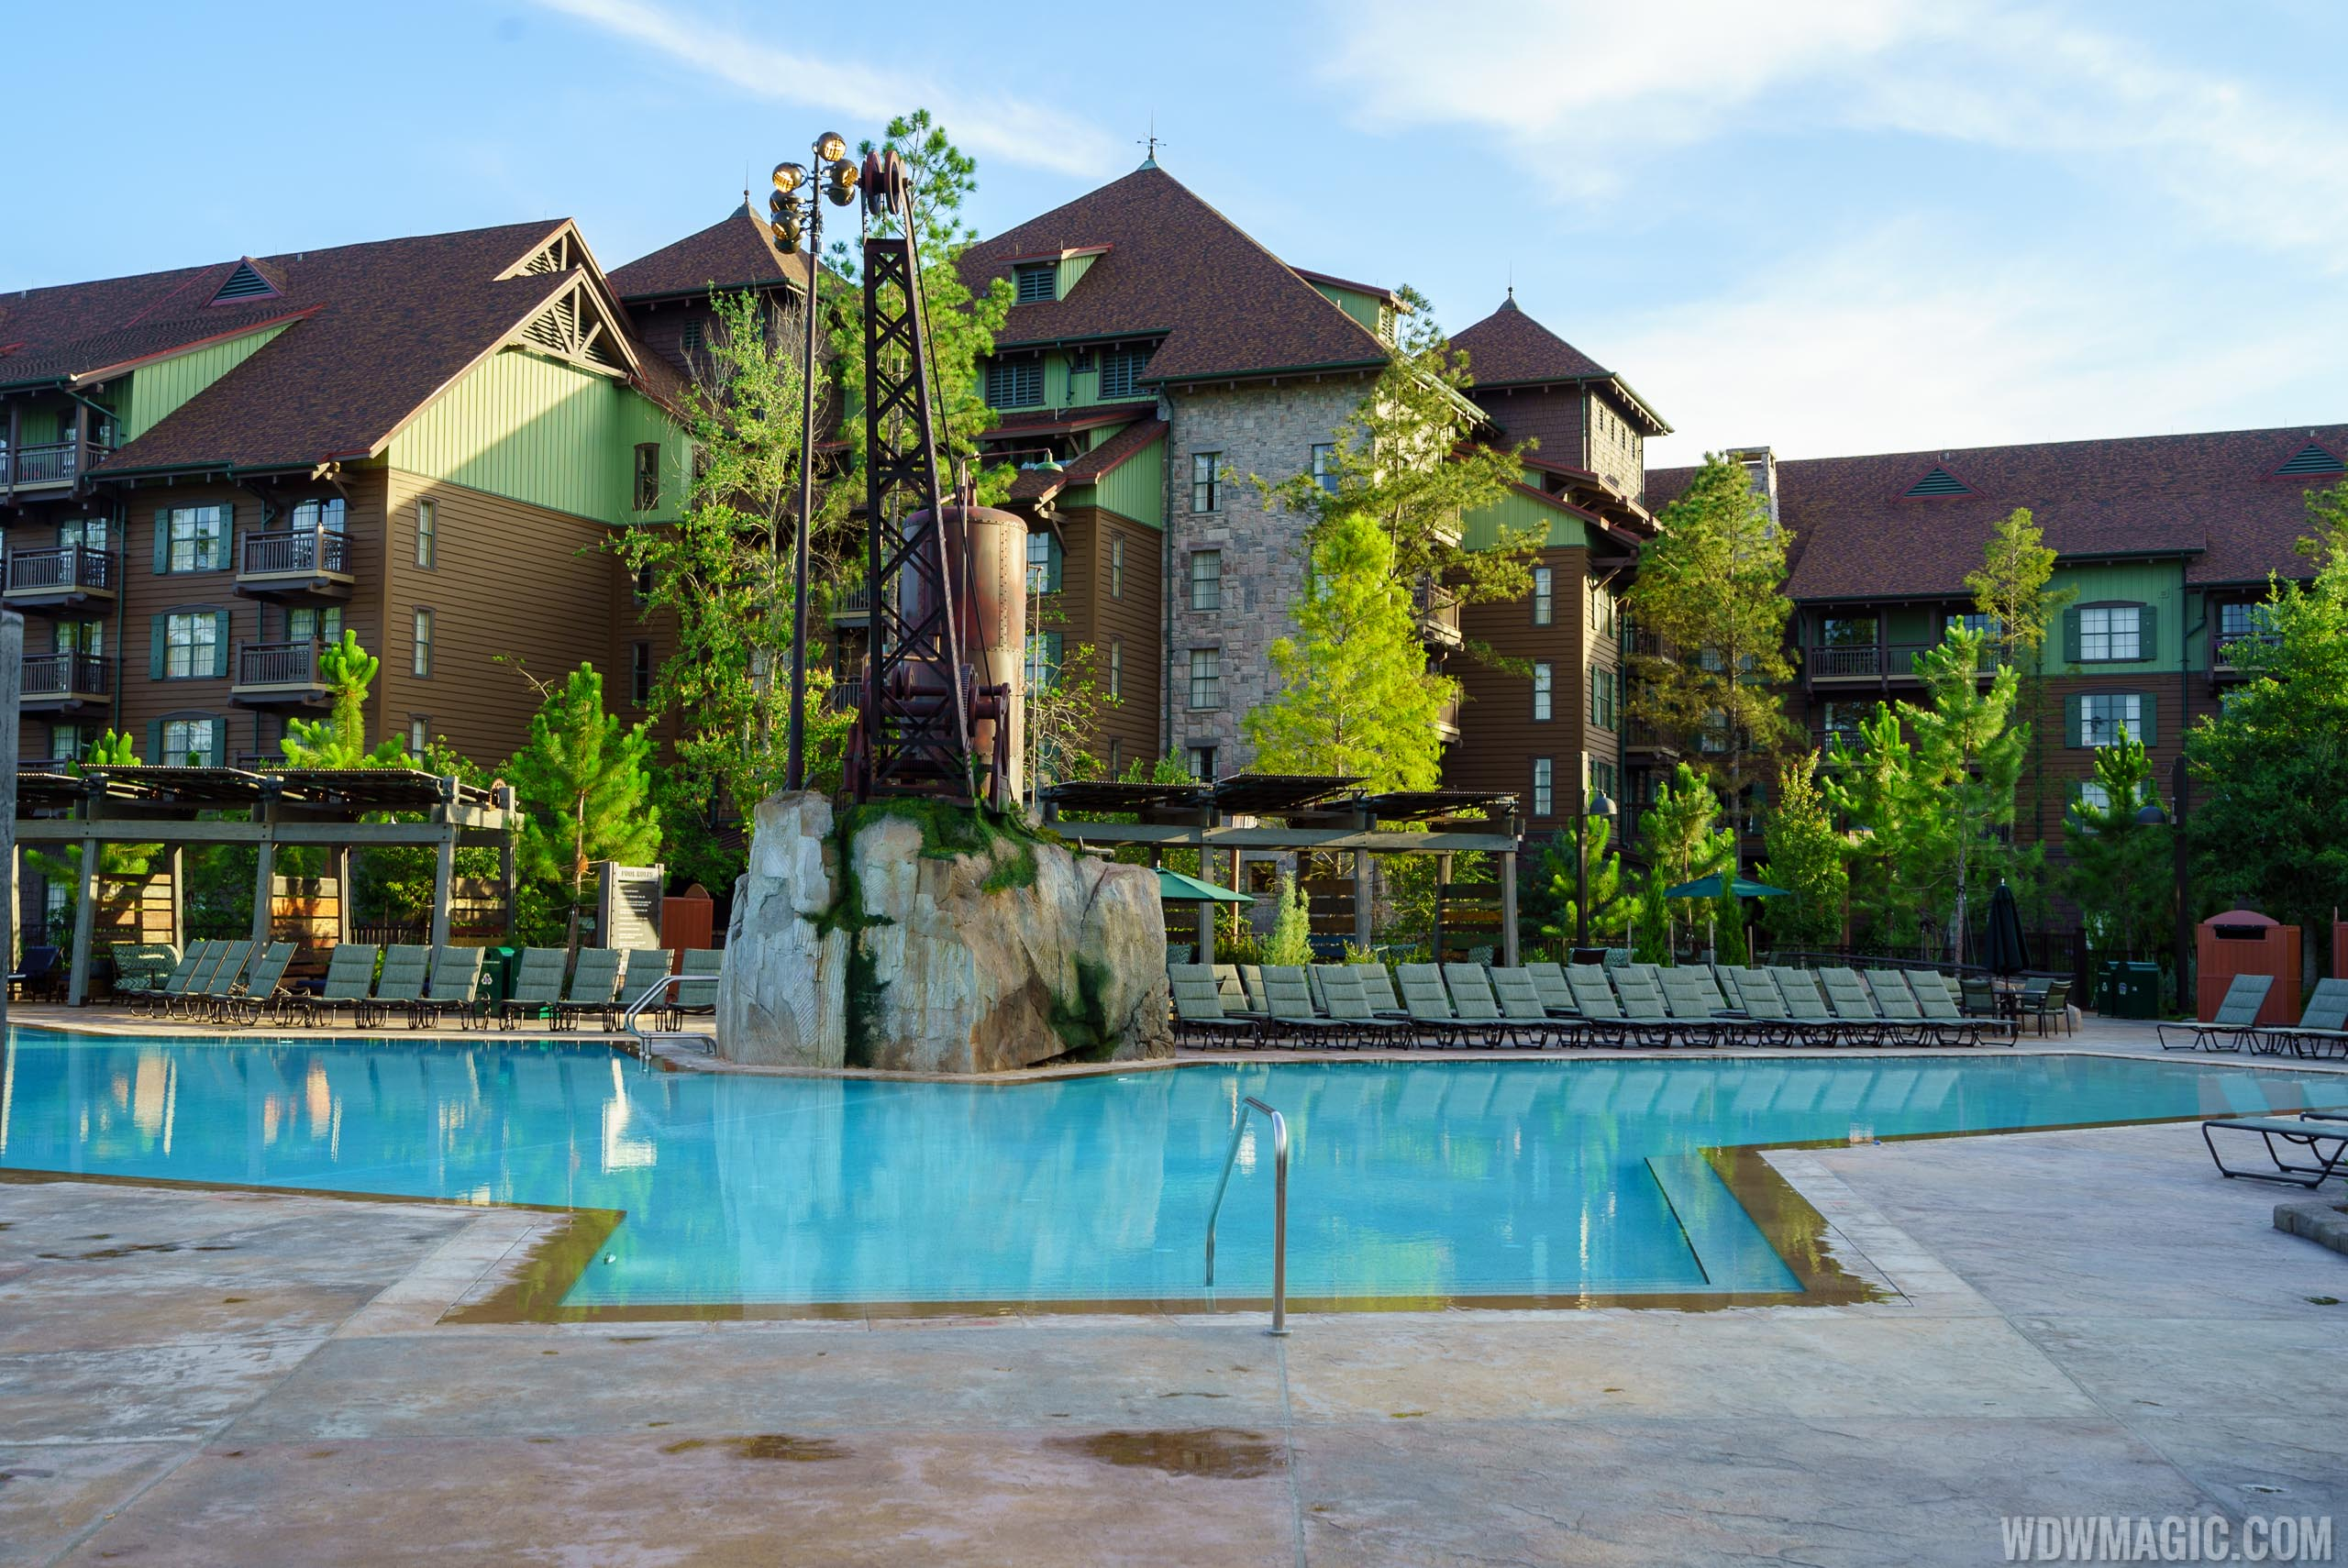 7 Bedroom Vacation Homes In Orlando Photos The New Boulder Ridge Cove Pool At Disney S